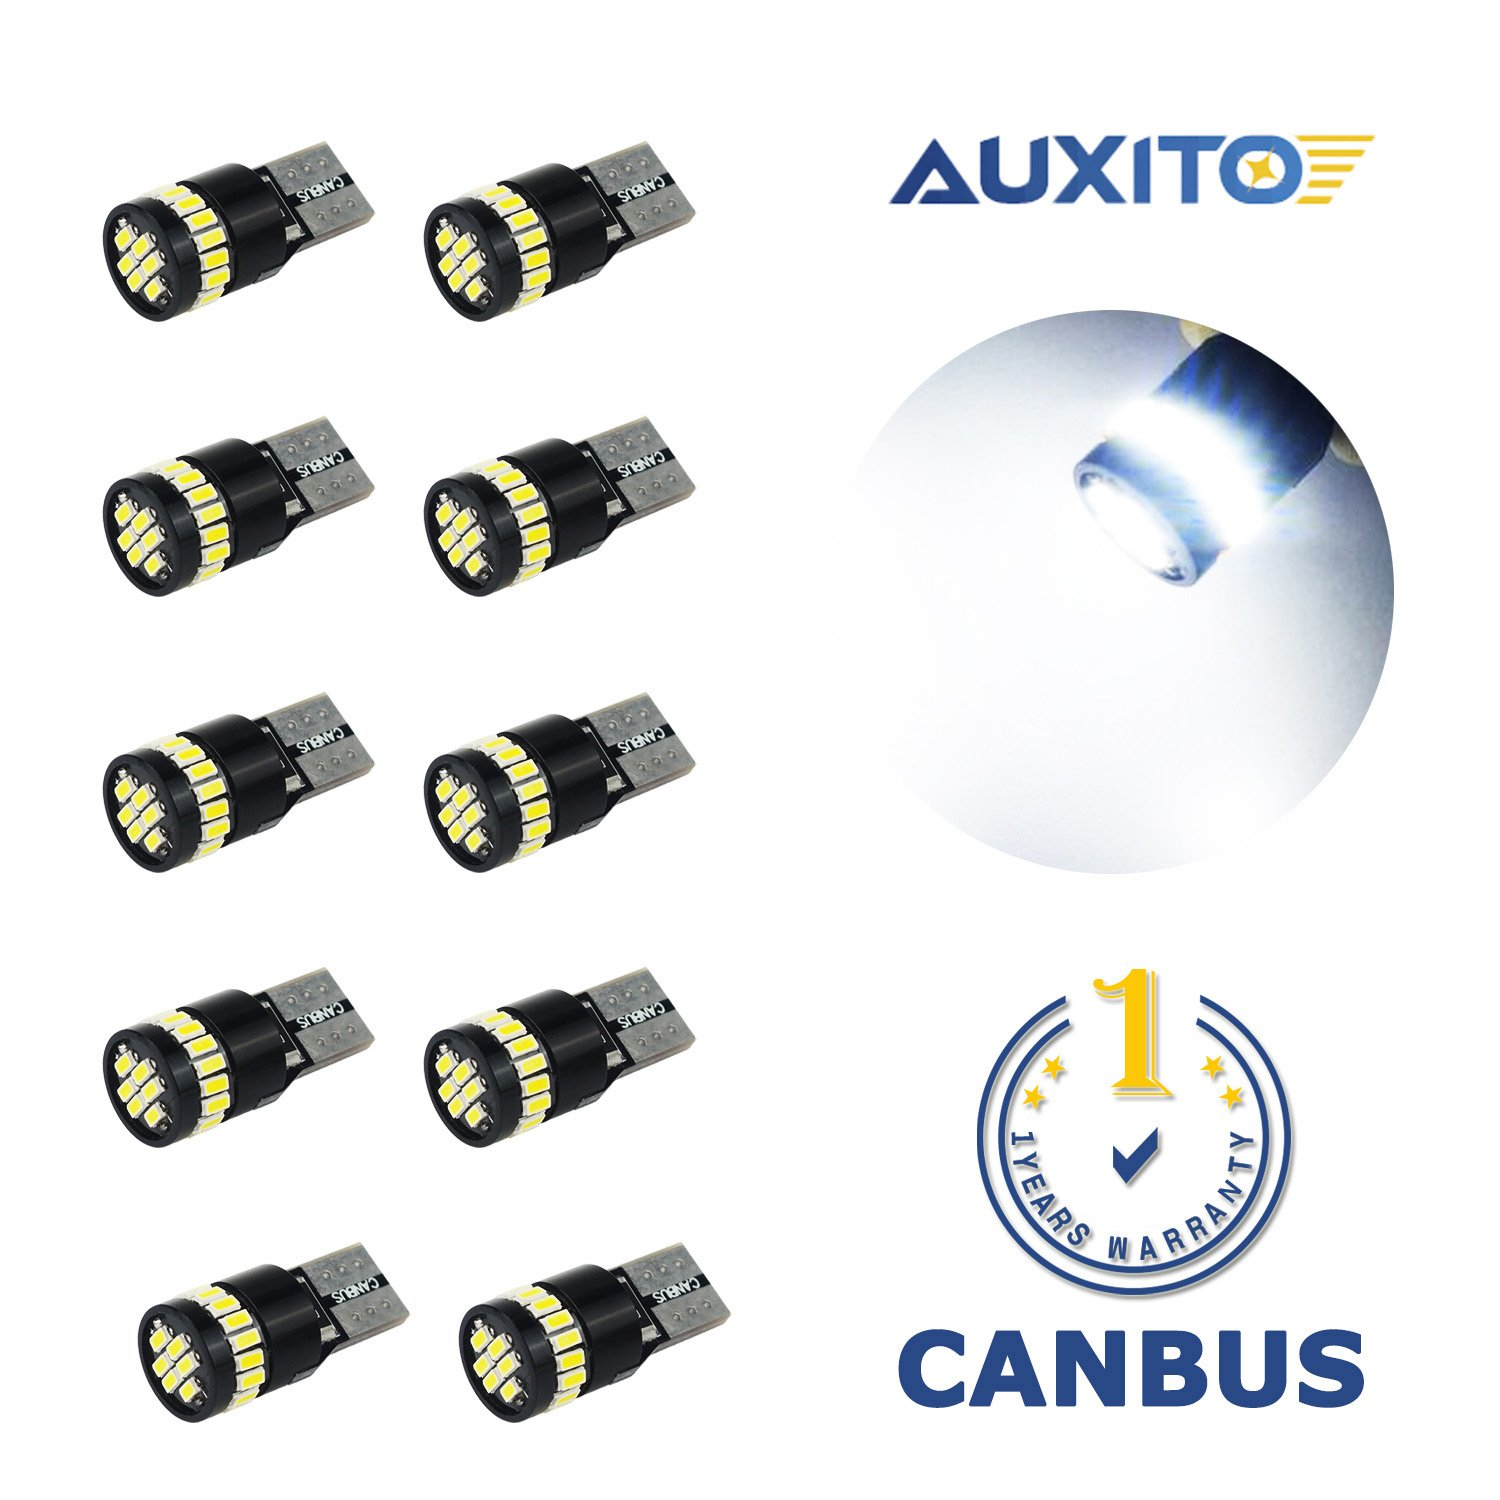 AUXITO 194 LED Light Bulb 6000K White Super Bright 168 2825 W5W T10 Wedge 24-SMD 3014 Chipsets LED Replacement Bulbs Error Free for Car Dome Map Door Courtesy License Plate Lights (Pack of 10) by AUXITO (Image #2)